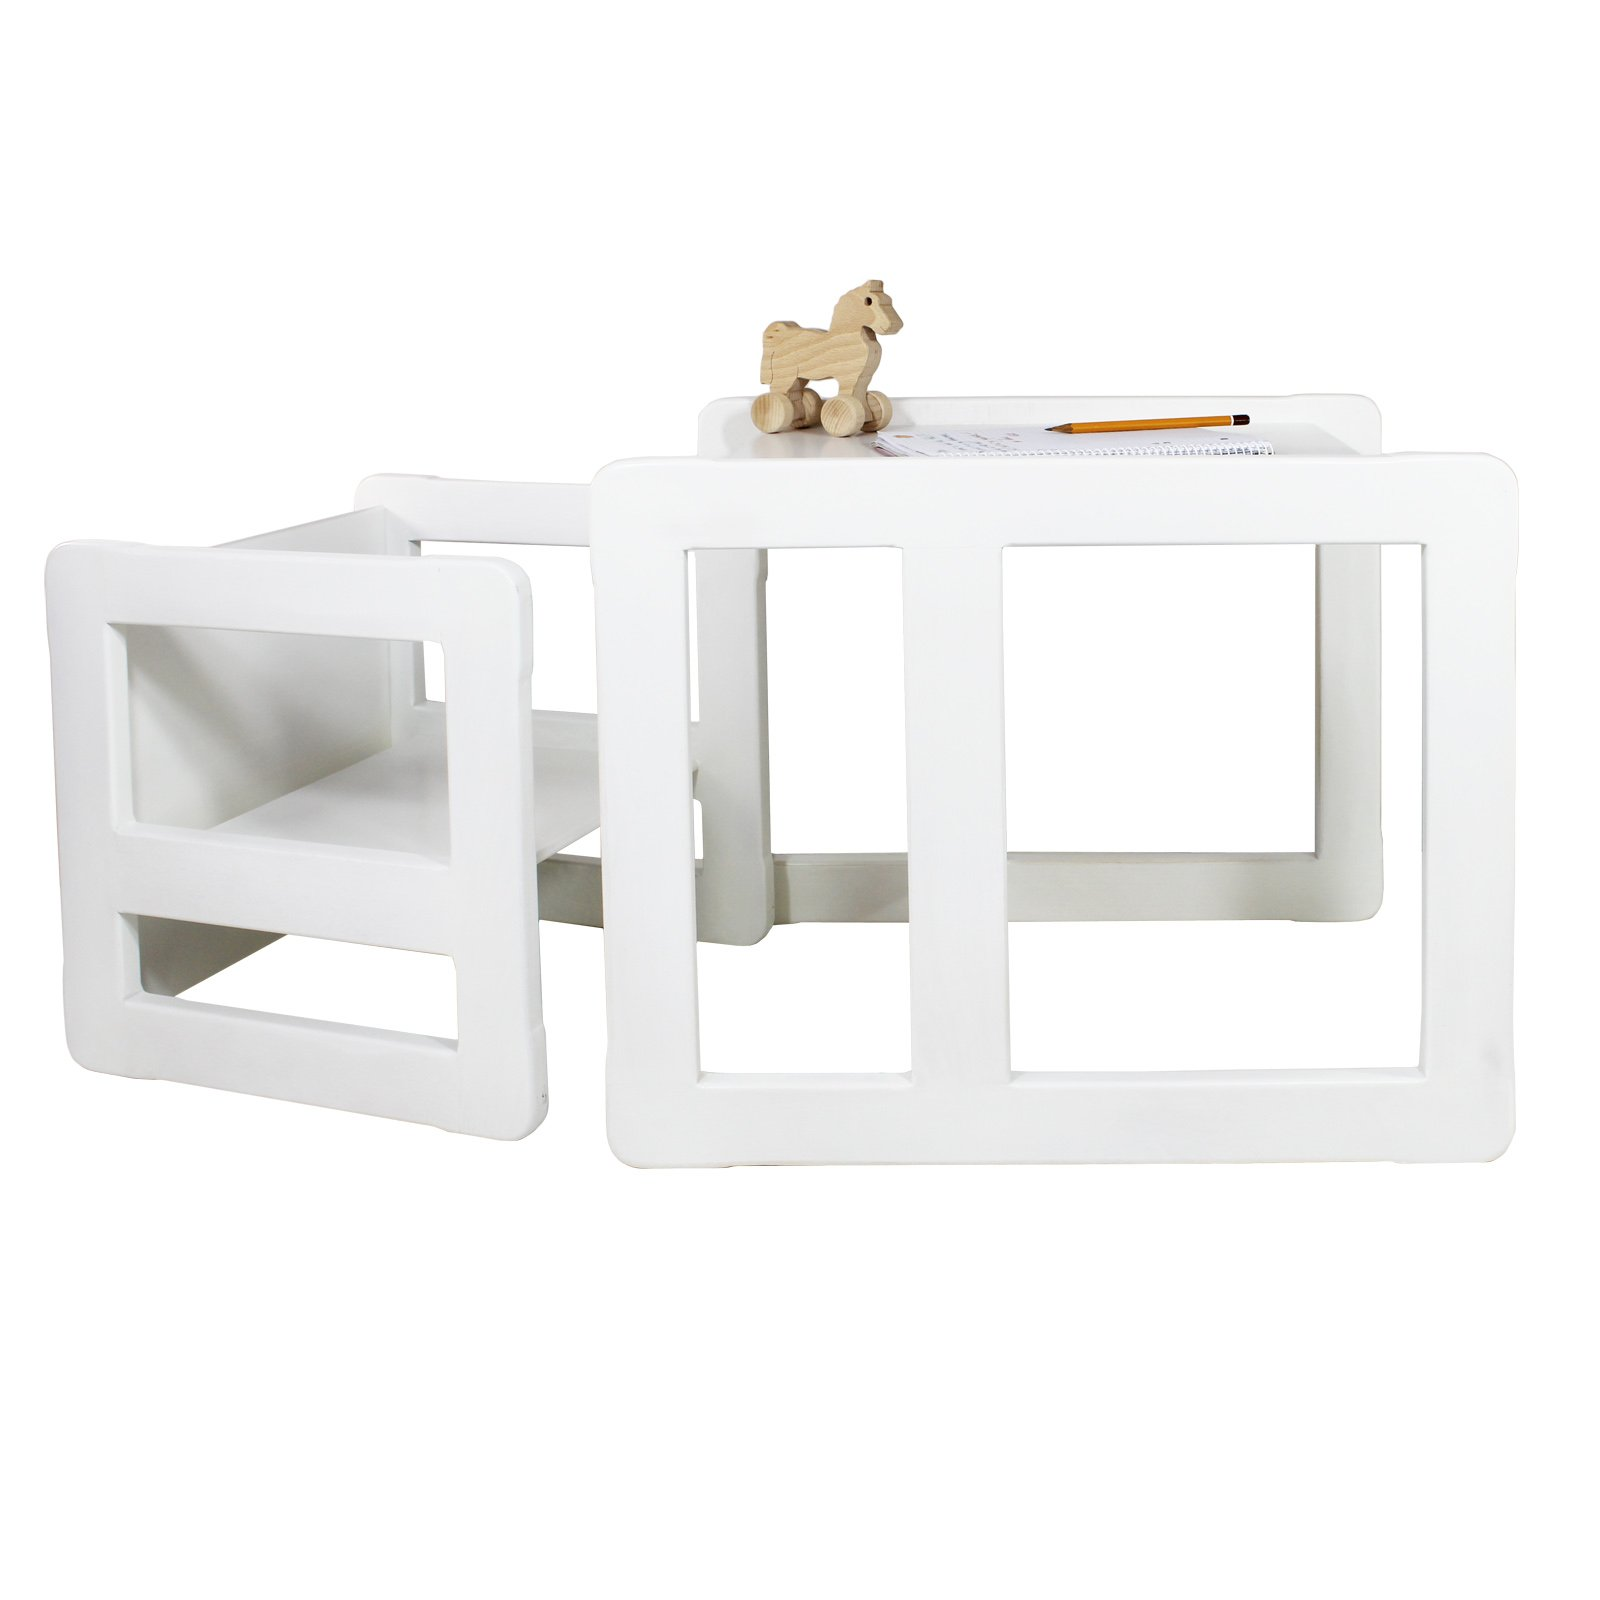 3 in 1 Childrens Multifunctional Furniture Set of 2, One Small Chair or Table and One Large Chair or Table Beech Wood, White Stained